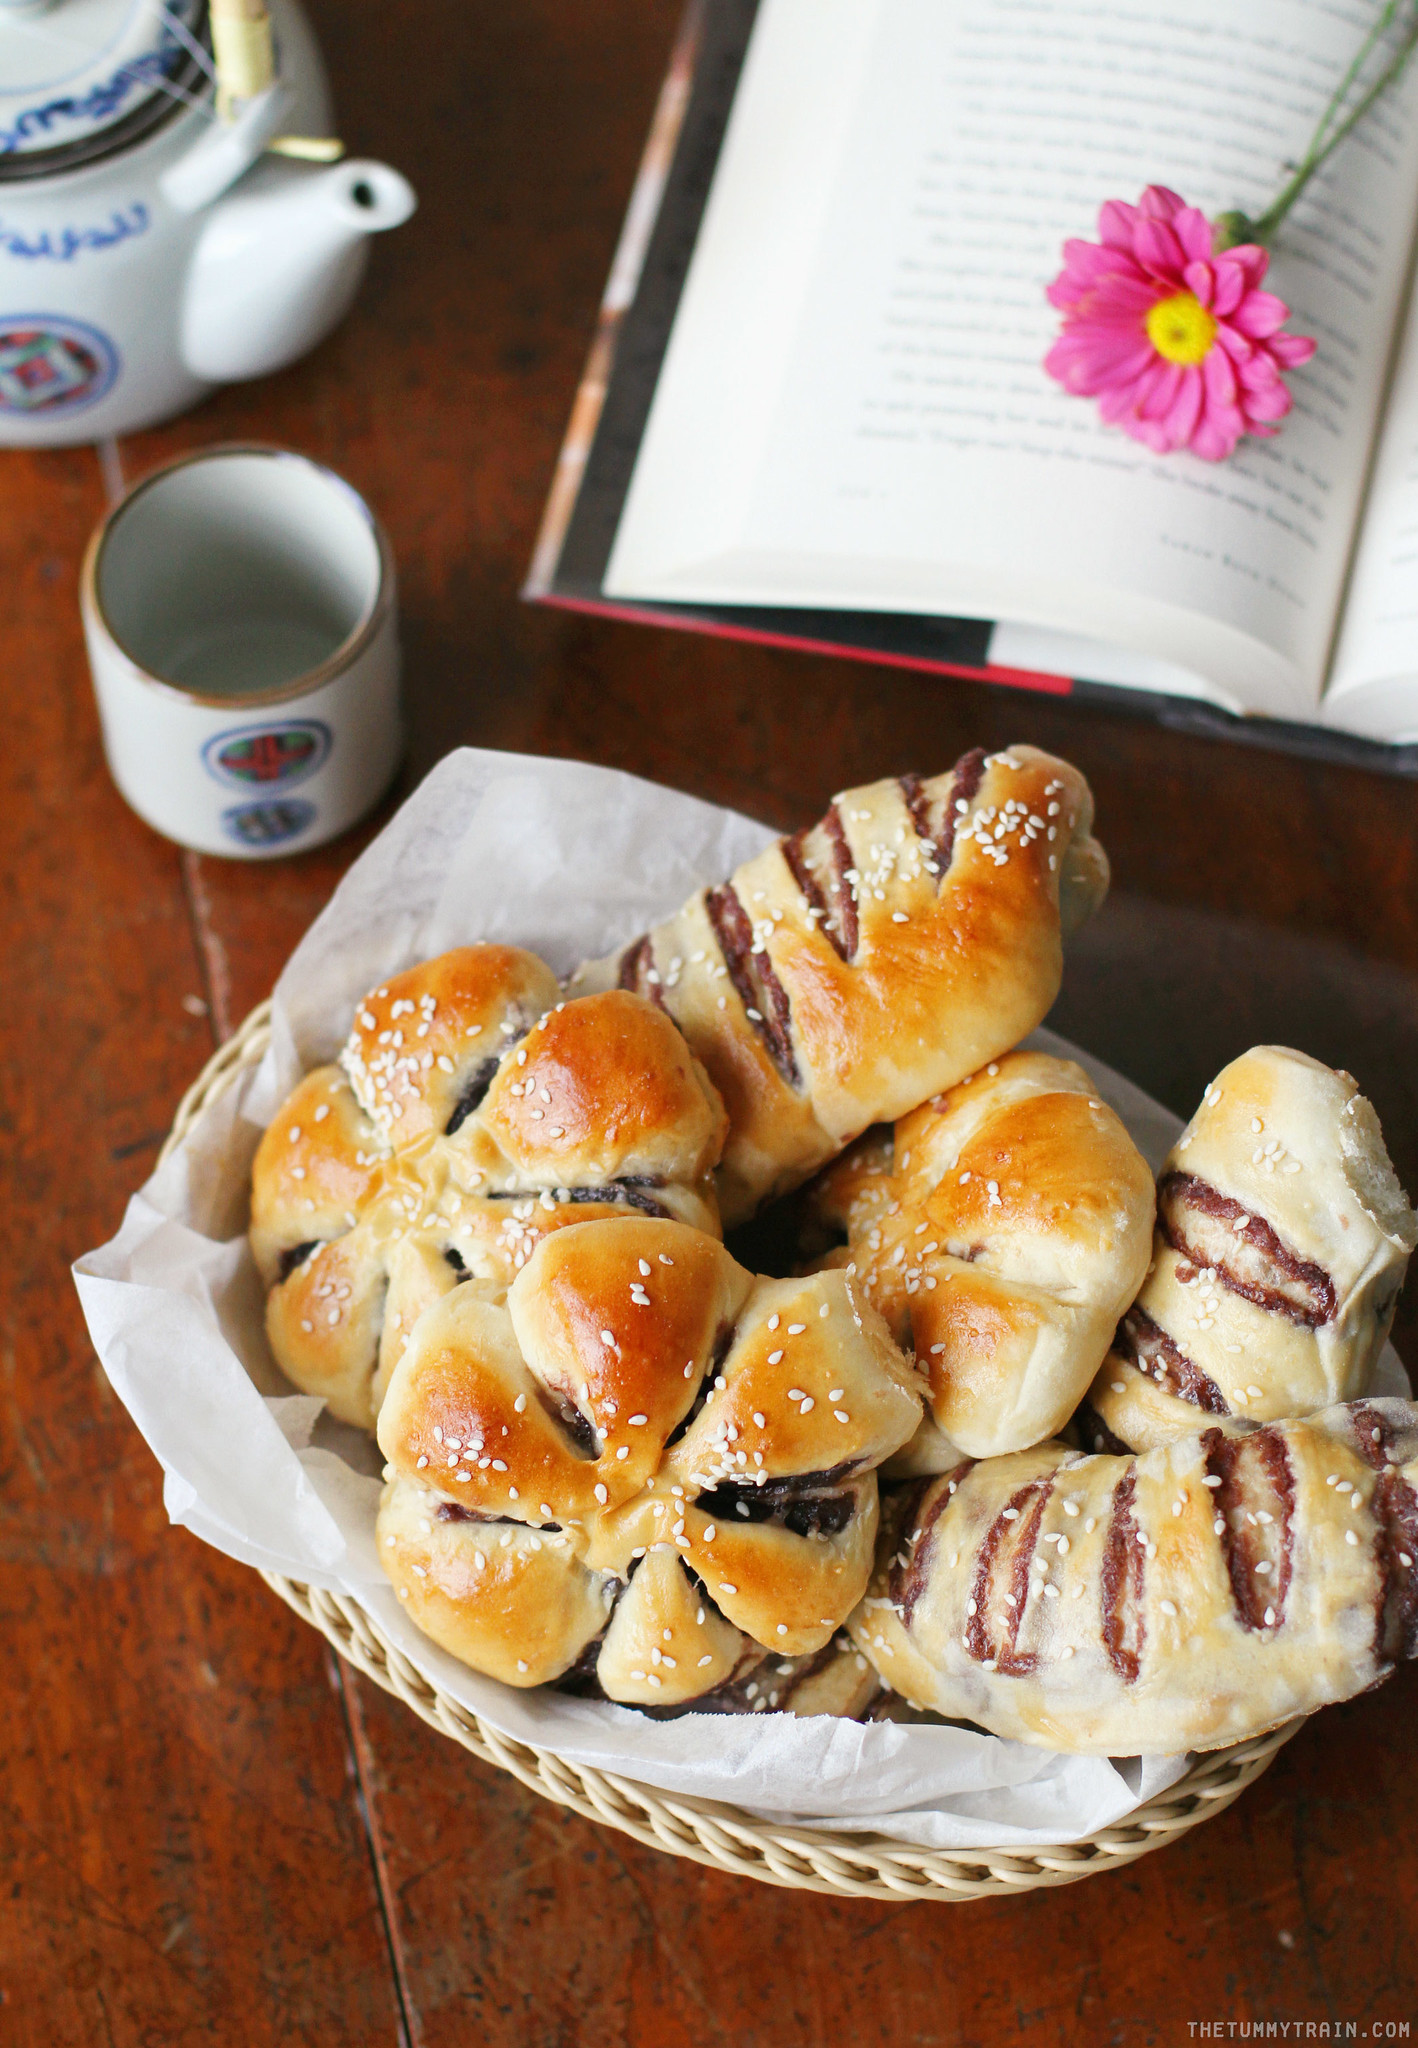 33715672756 a73efd2bdc k - The surprising charms of Asian Red Bean Bread